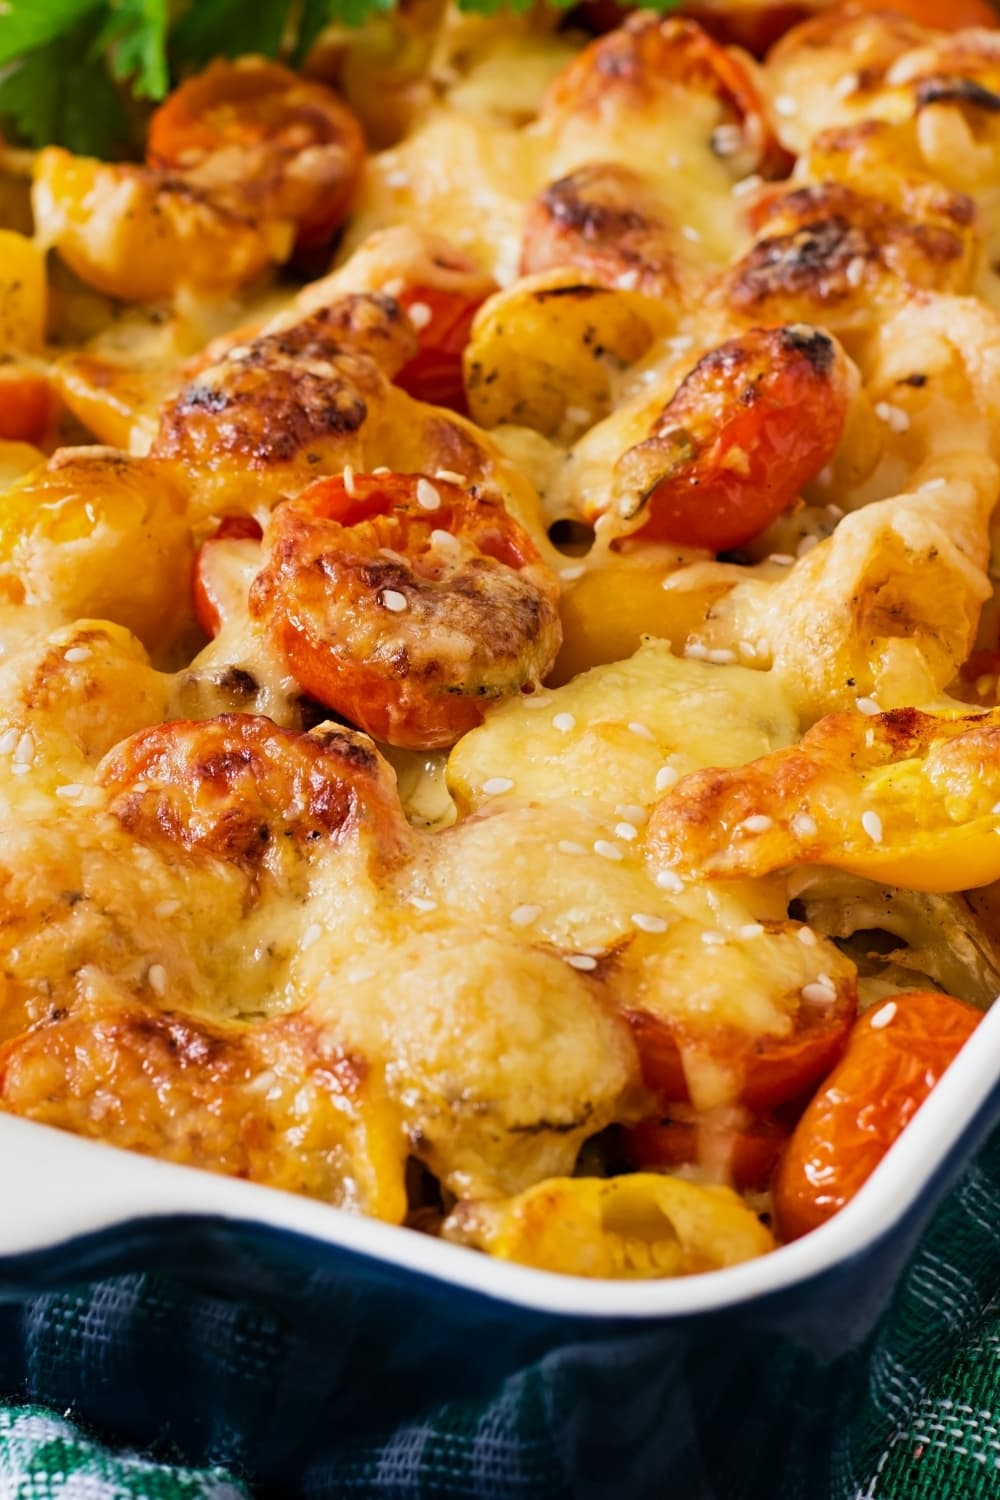 Vegetable Casserole with Zucchini, Mushrooms and Cherry Tomatoes